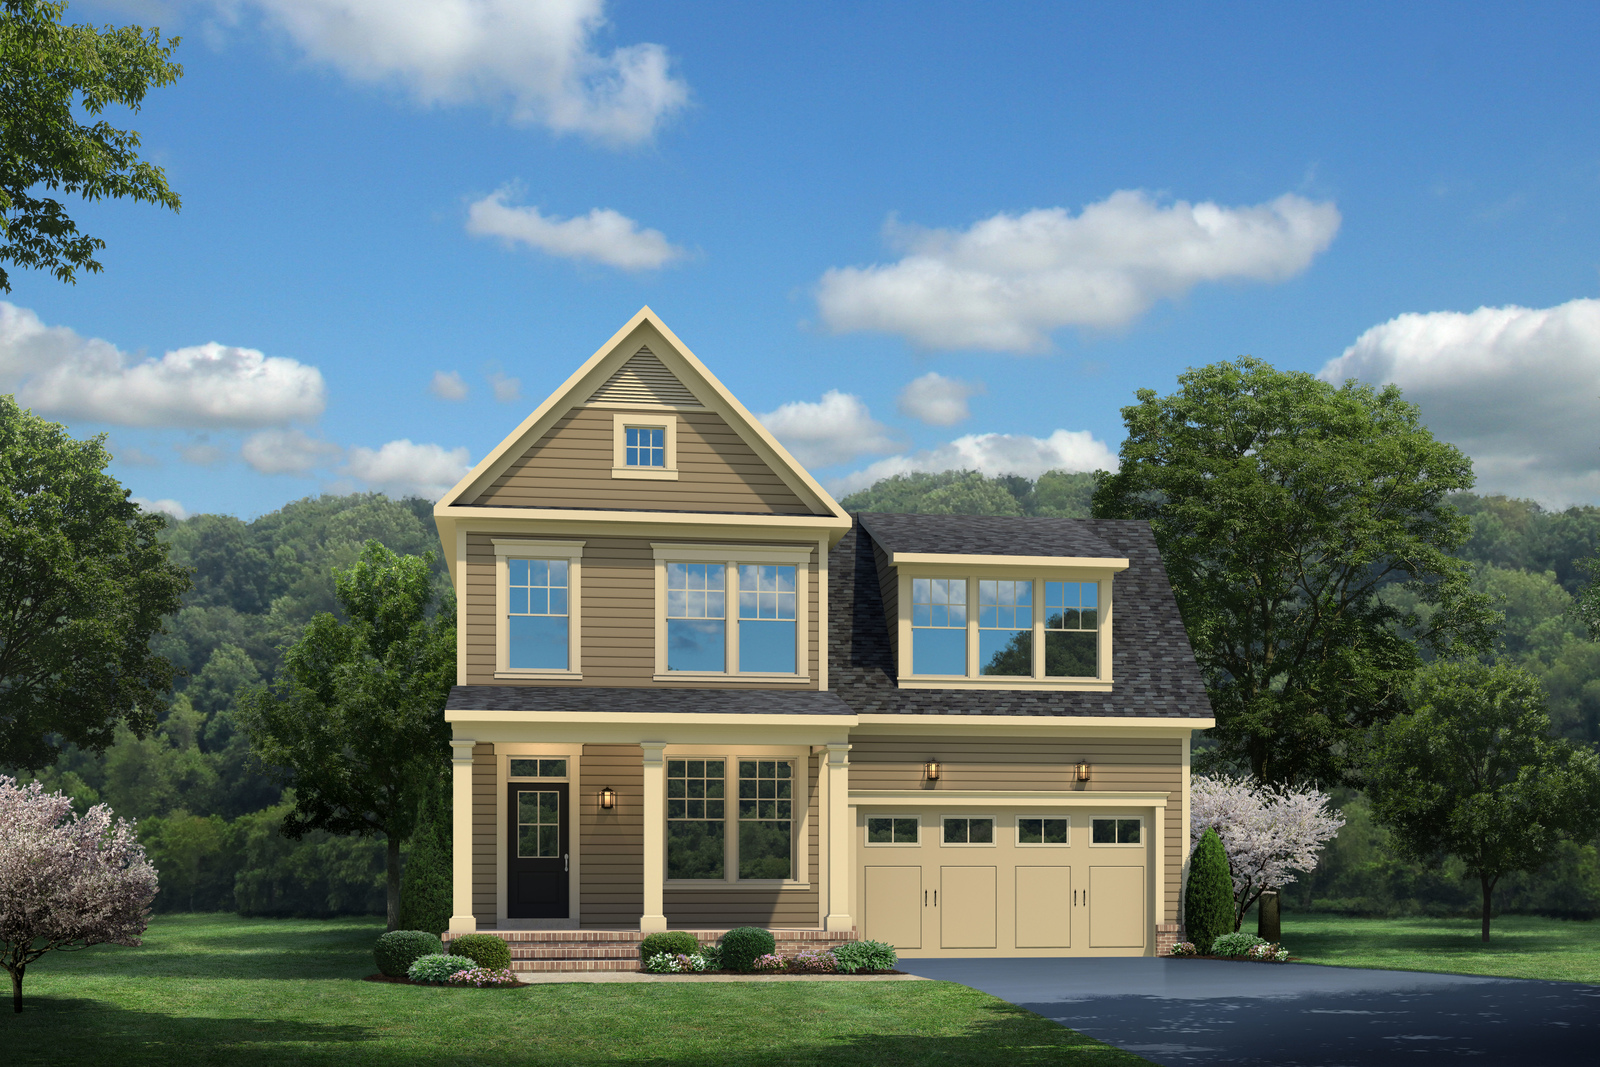 New Construction Single Family Homes For Sale Mary Peake